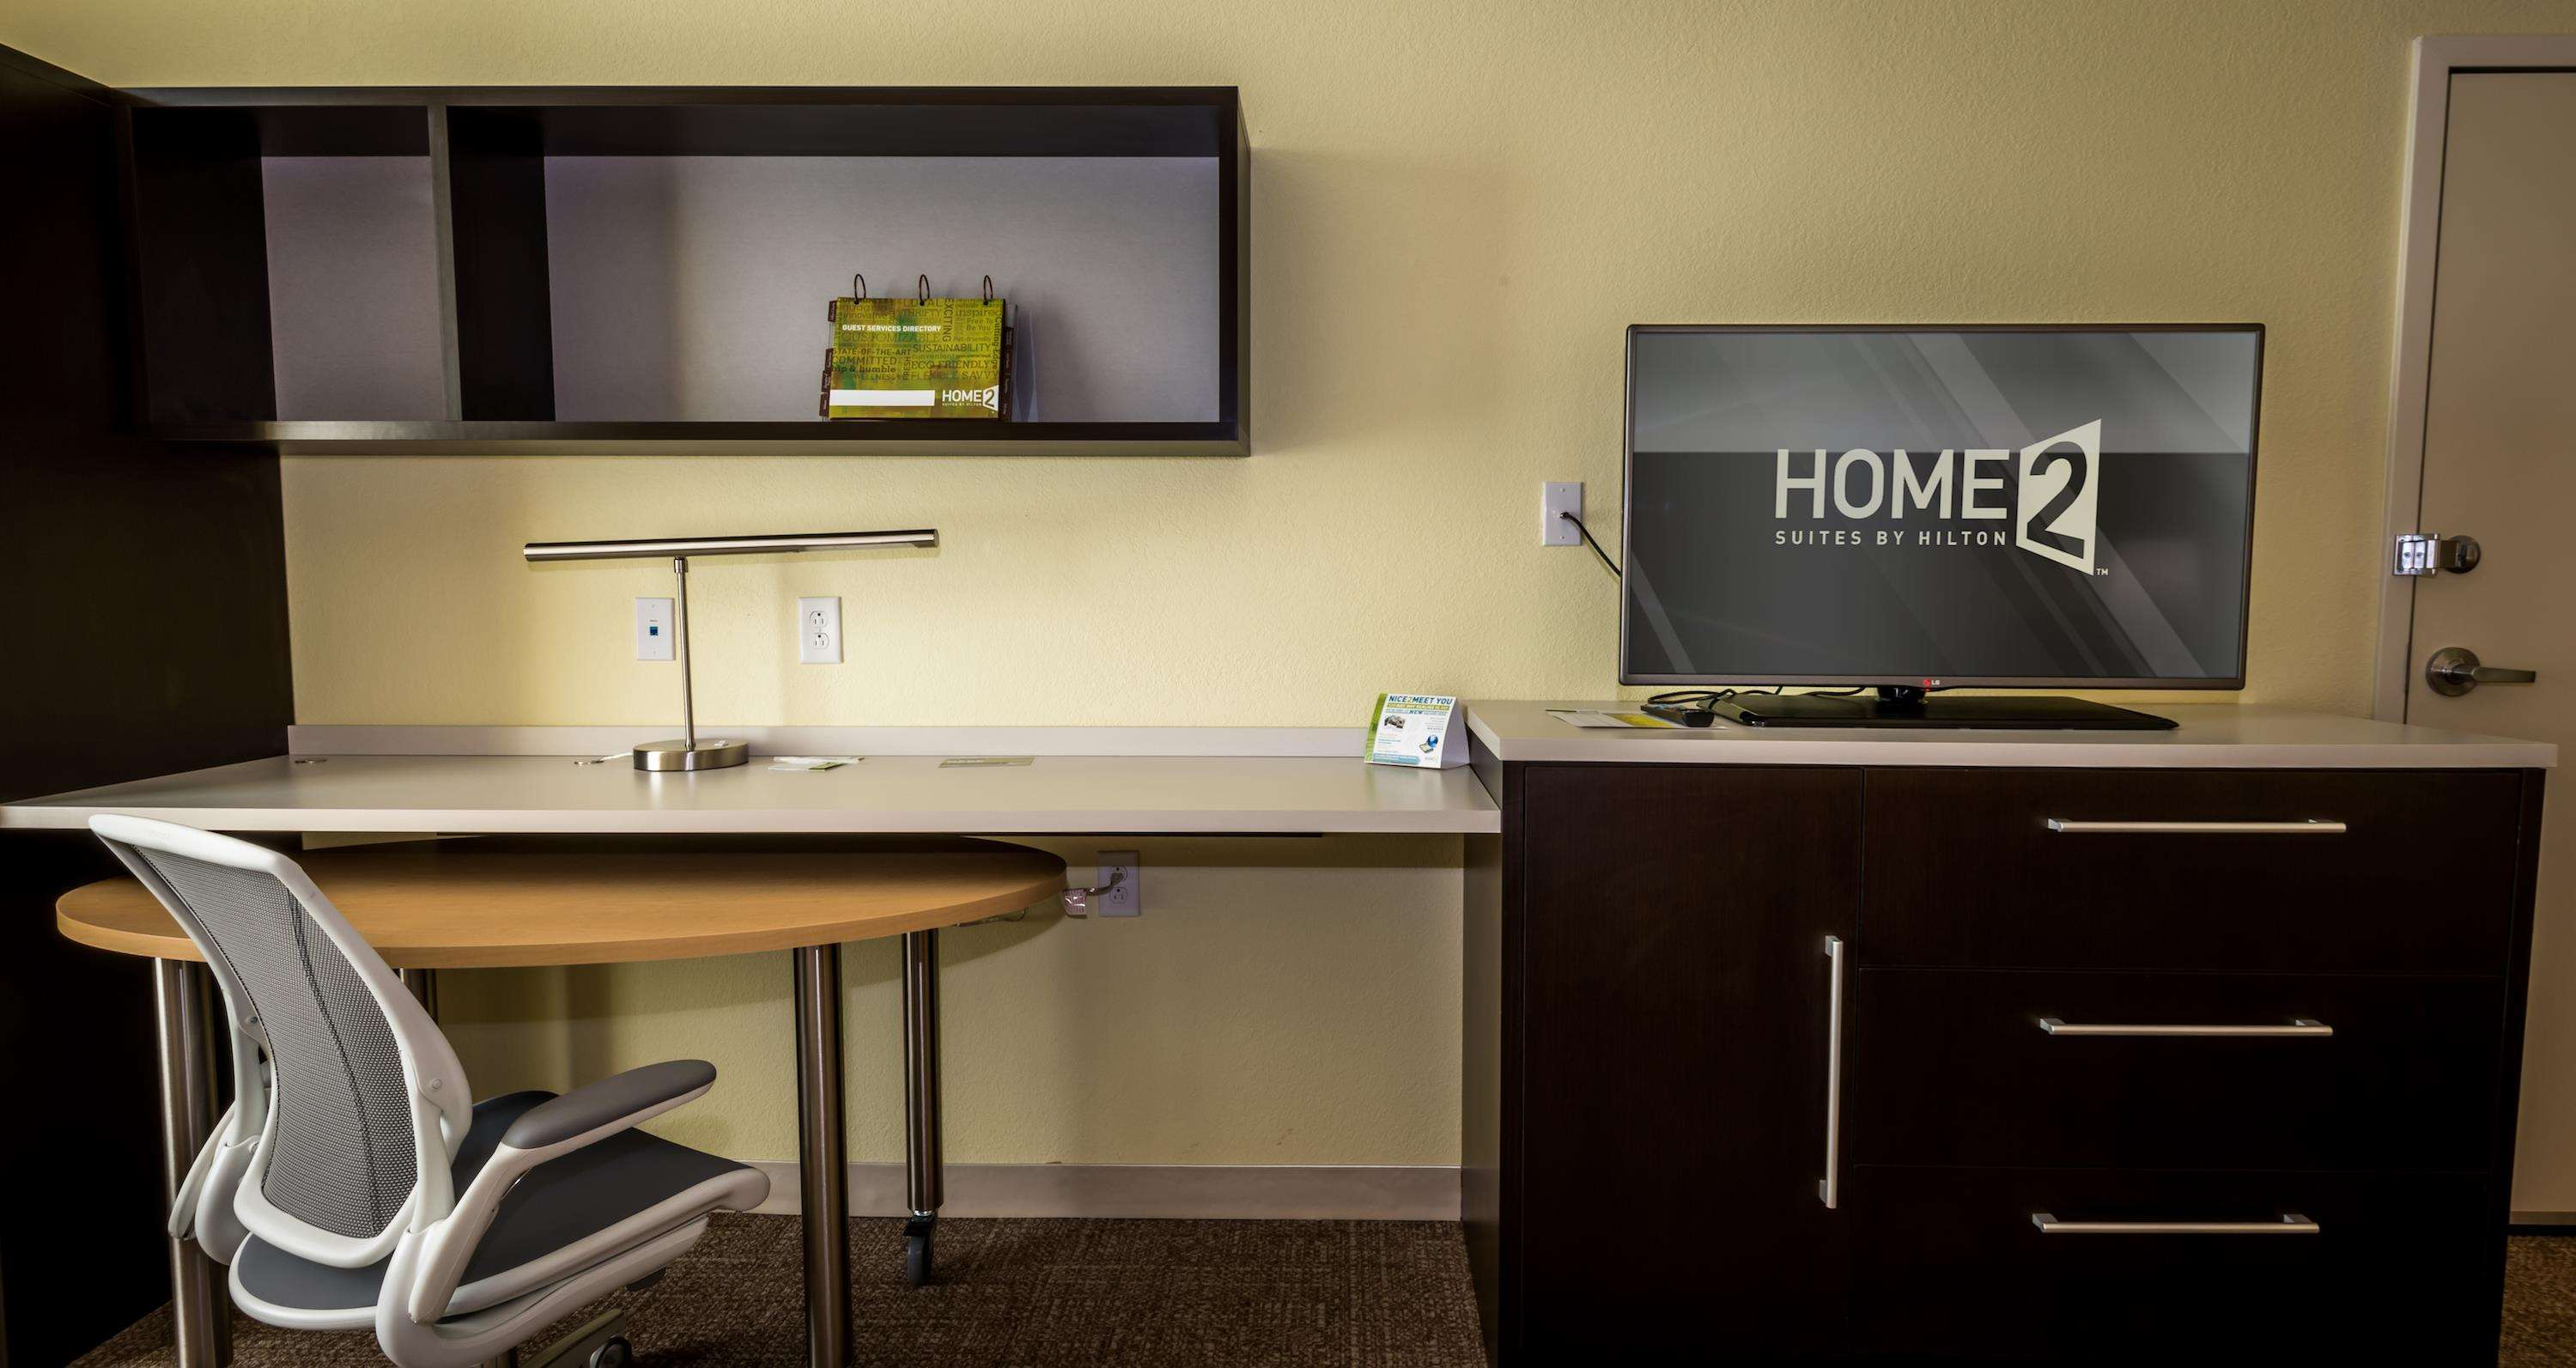 Home2 Suites by Hilton Gulfport I-10 image 46